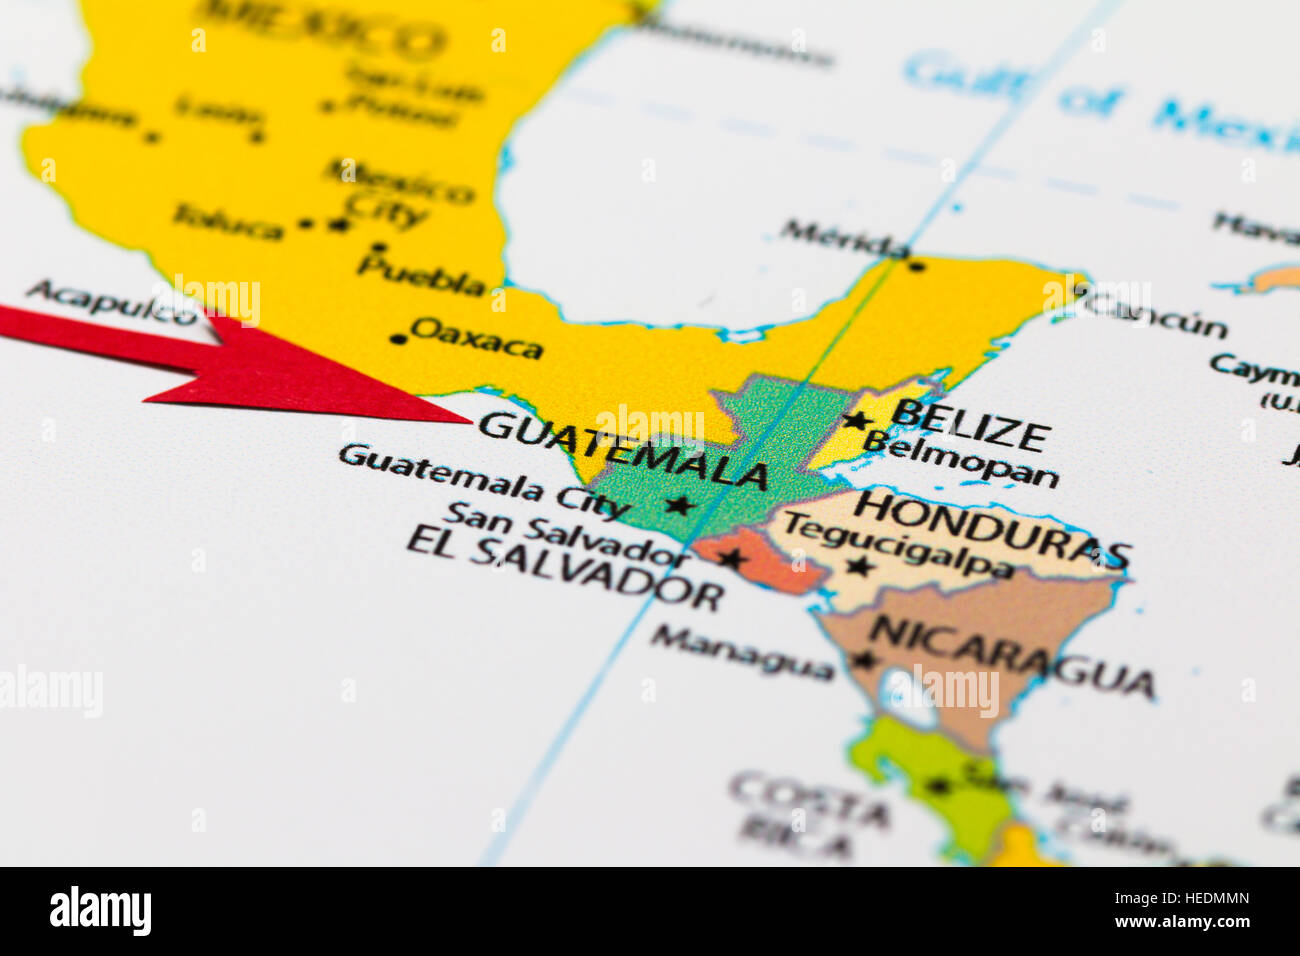 Red arrow pointing Guatemala on the map of south central America